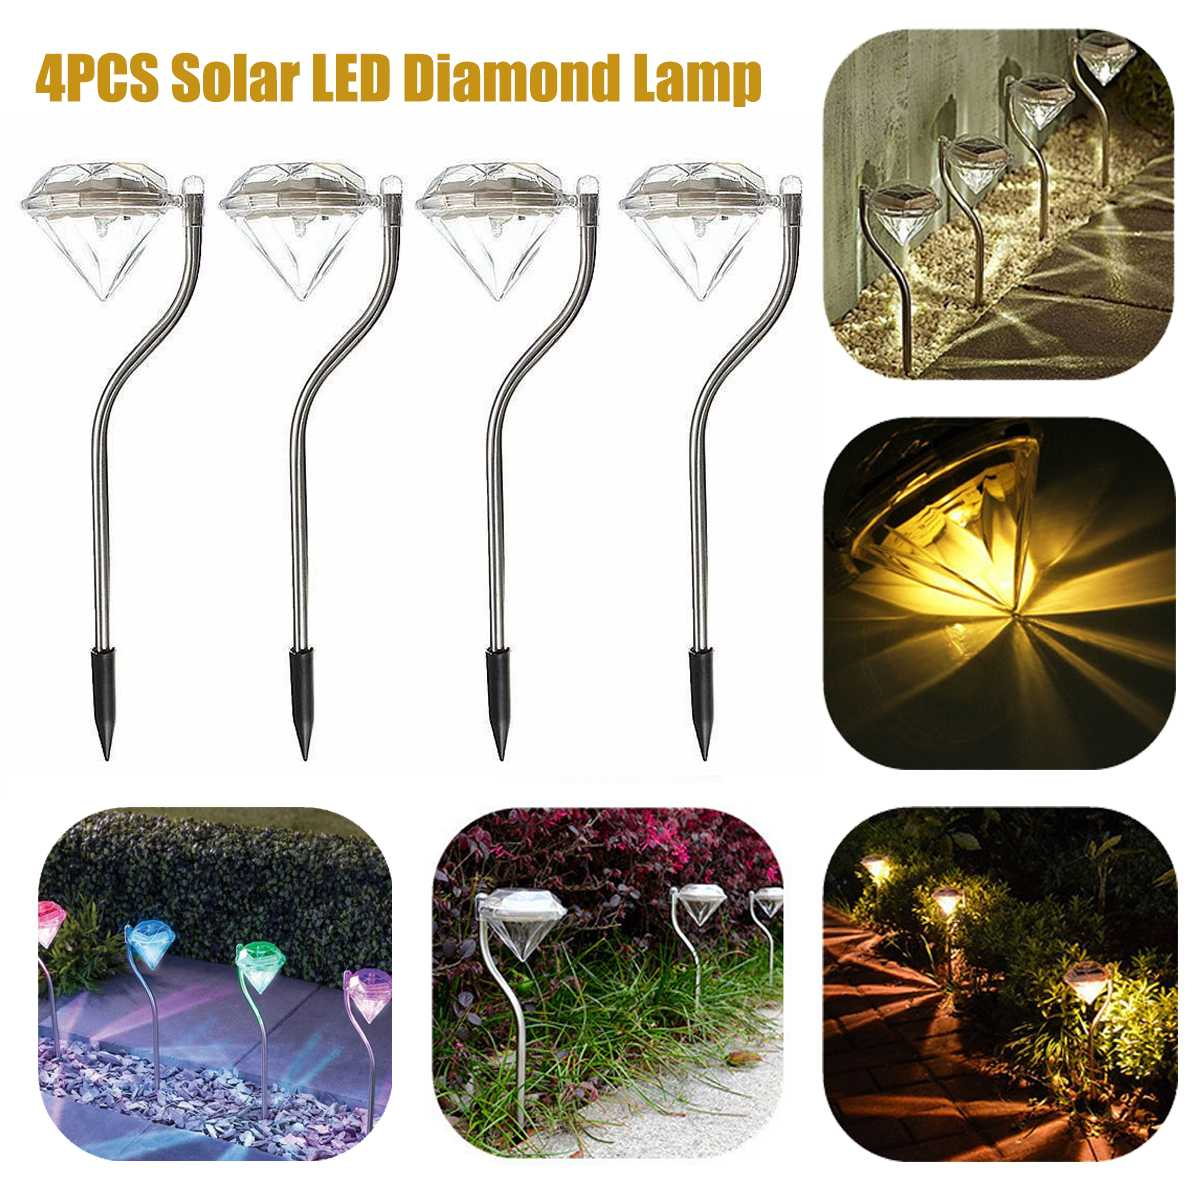 4pcs/lot Outdoor LED Solar Lamps for Garden Path Stake Lanterns LED Diamonds Pathway Lawn Solar Light Waterproof|LED Lawn Lamps| |  - title=